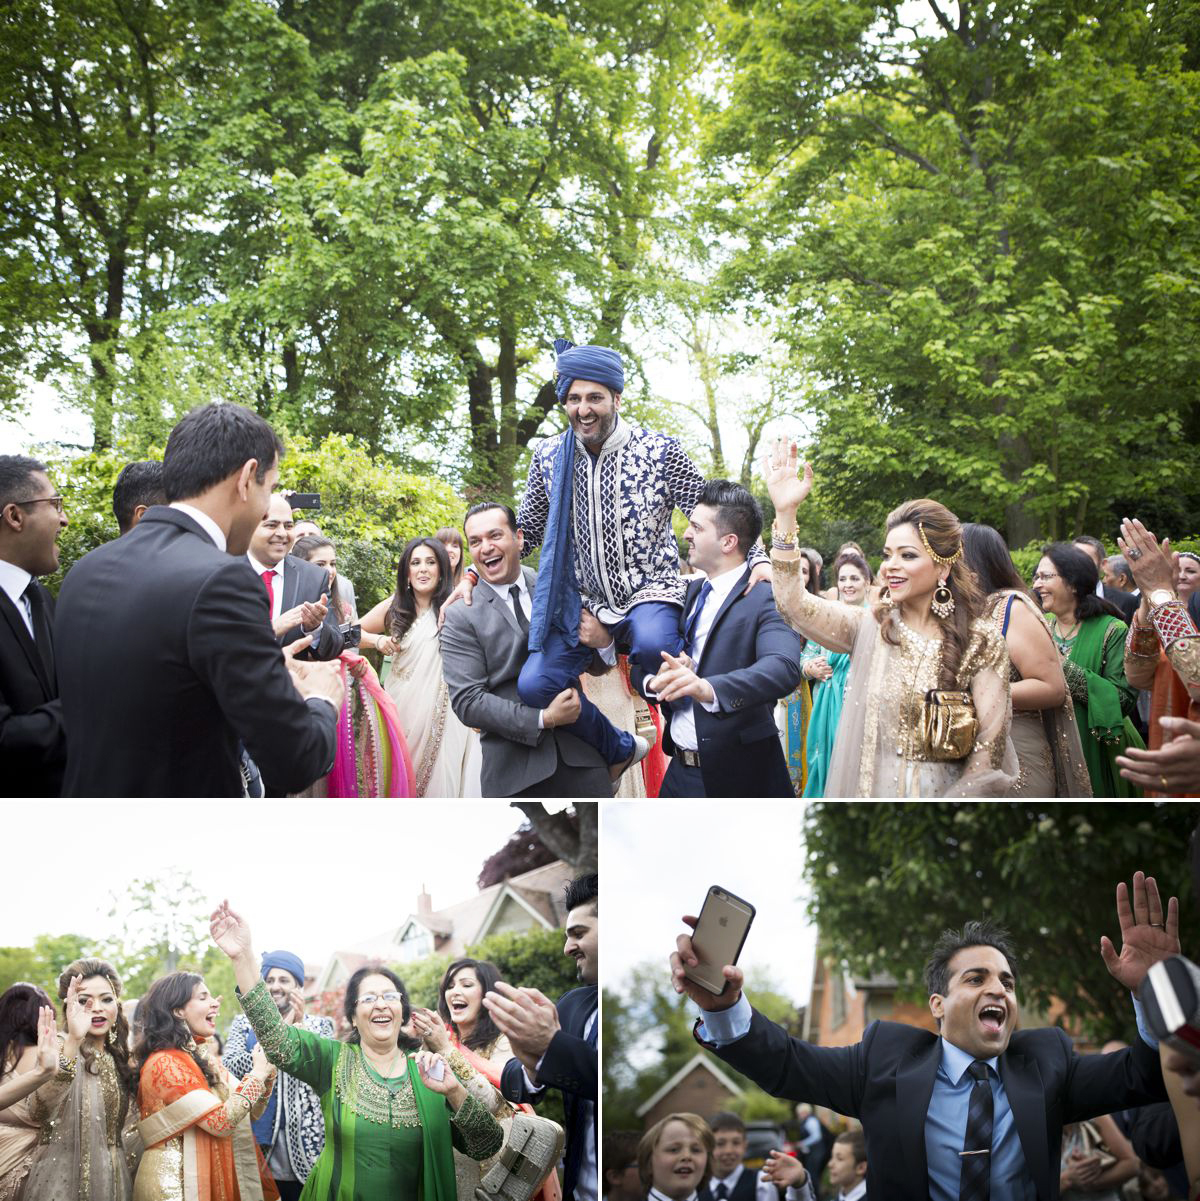 Eshott Hall Weddings an Indian wedding